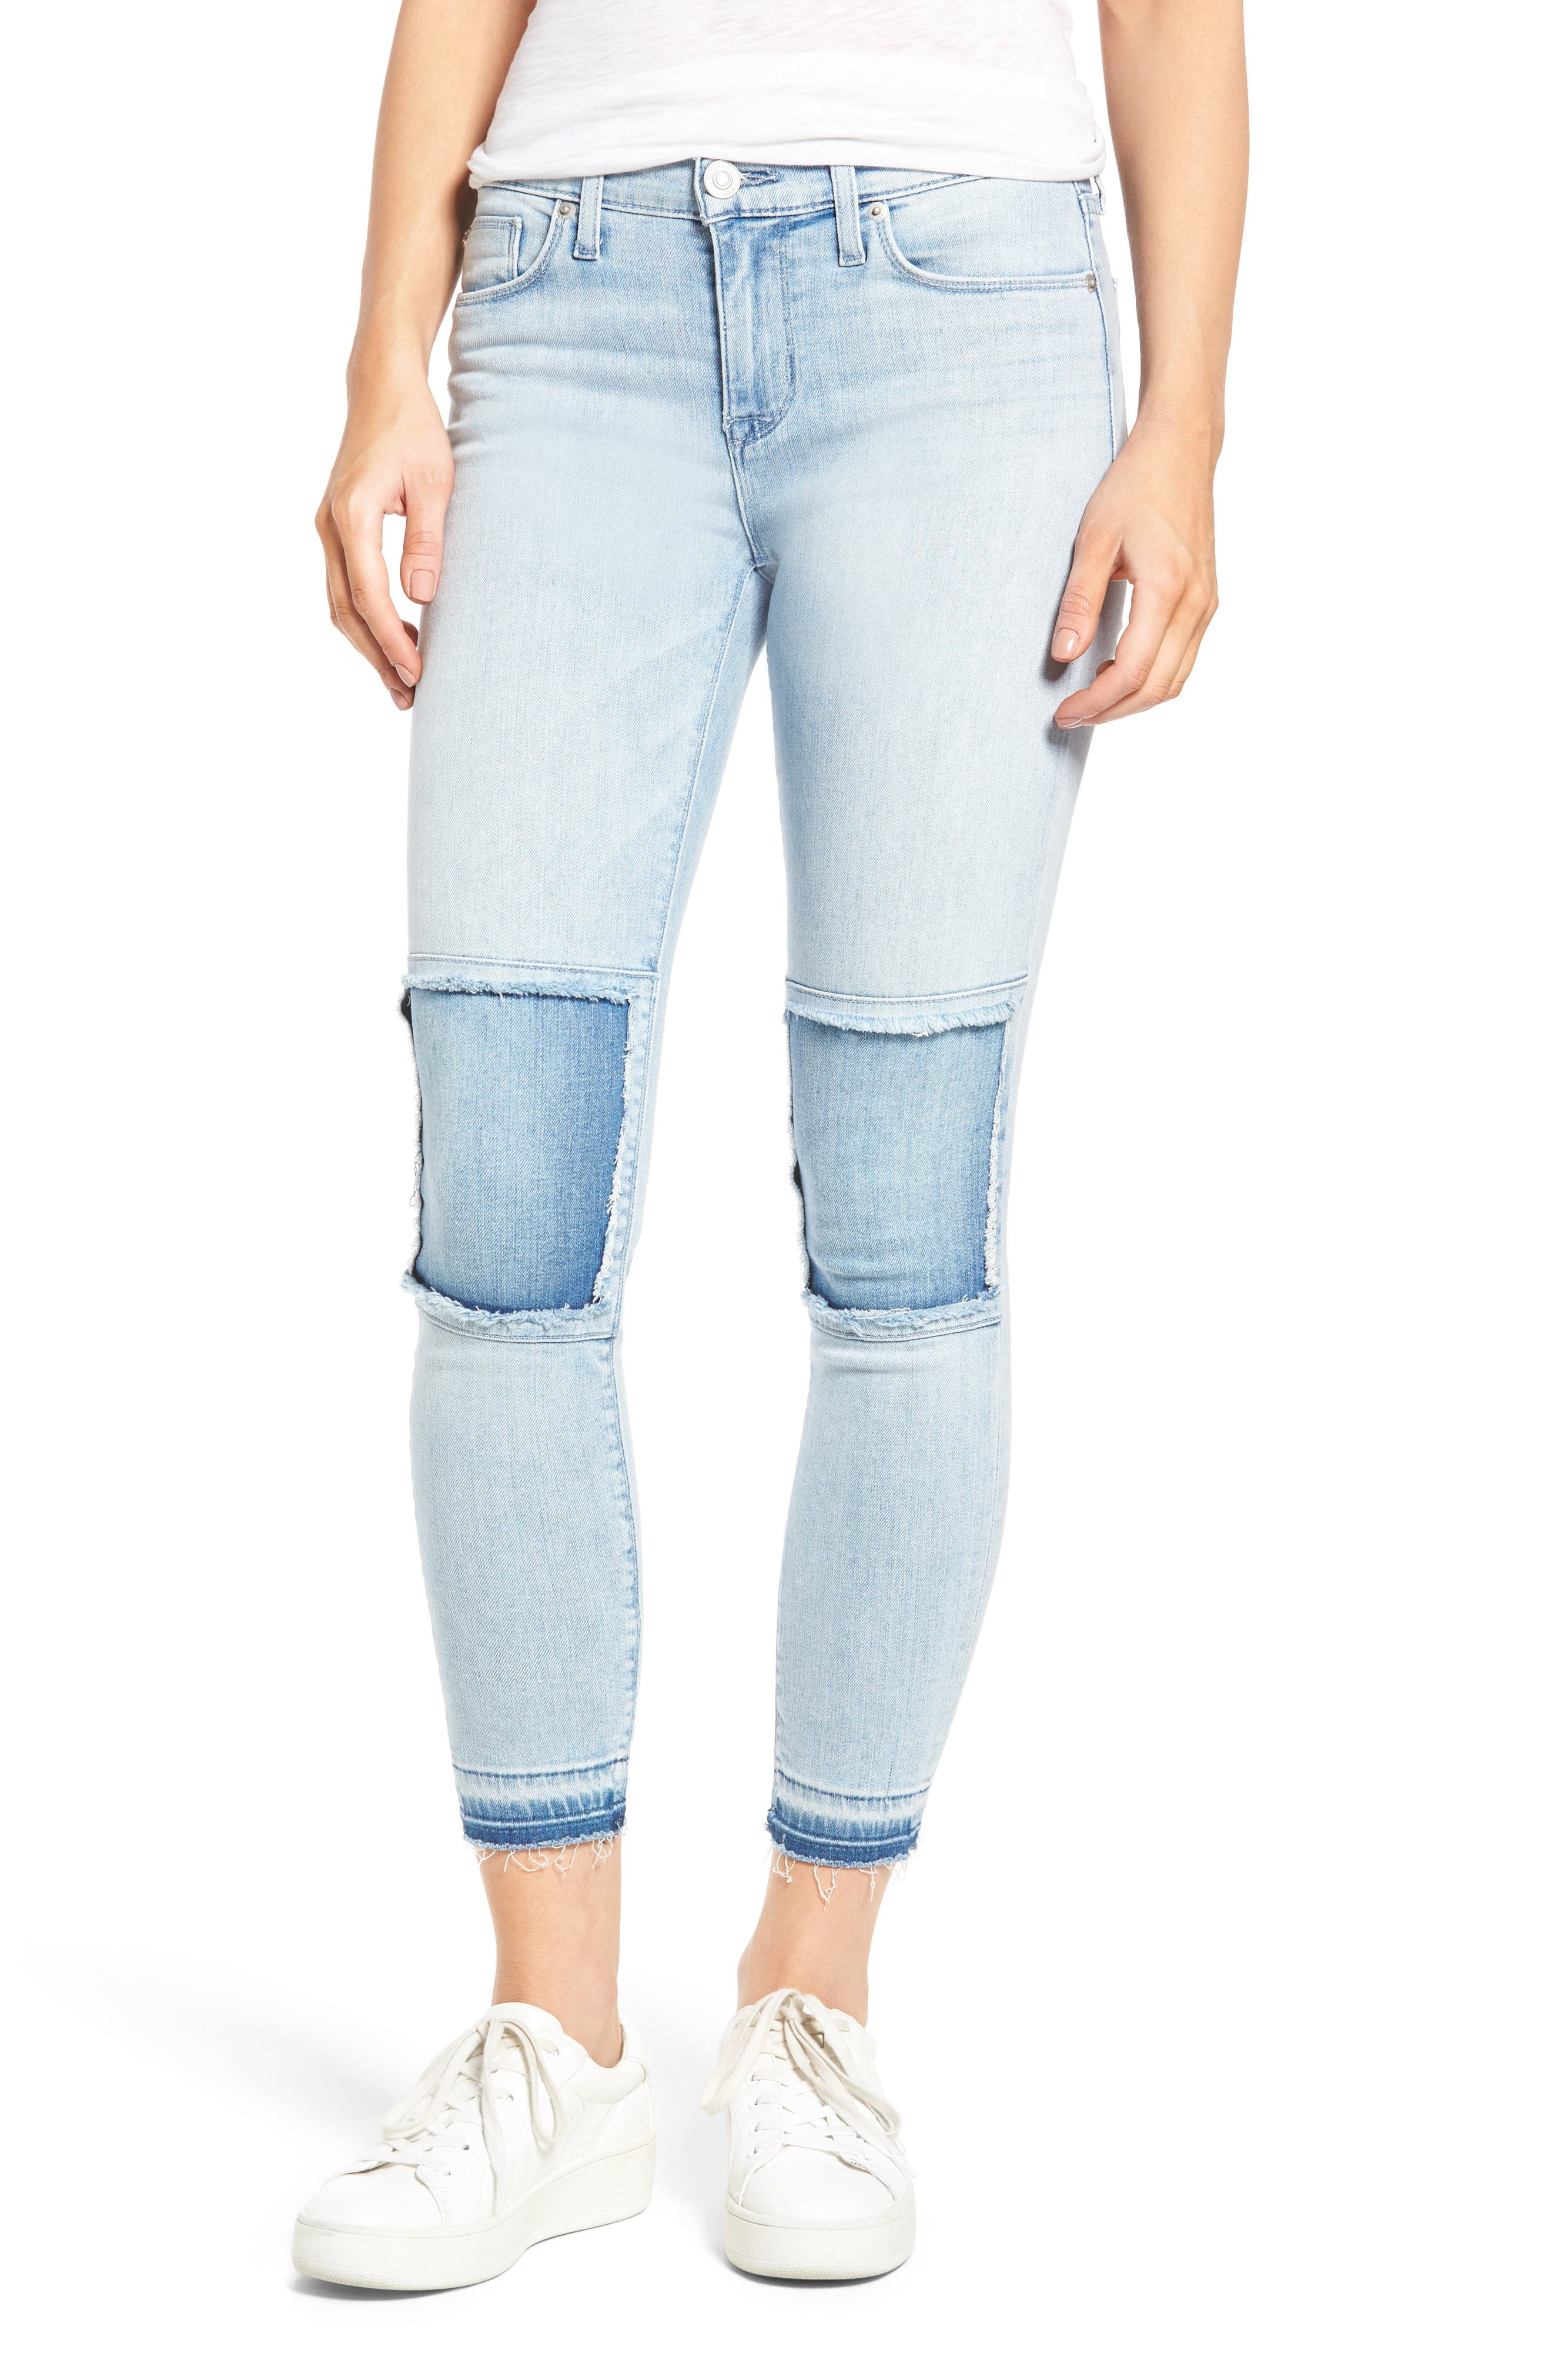 Szzi Mid Rise Patched Skinny Jeans,                         Main,                         color, 455